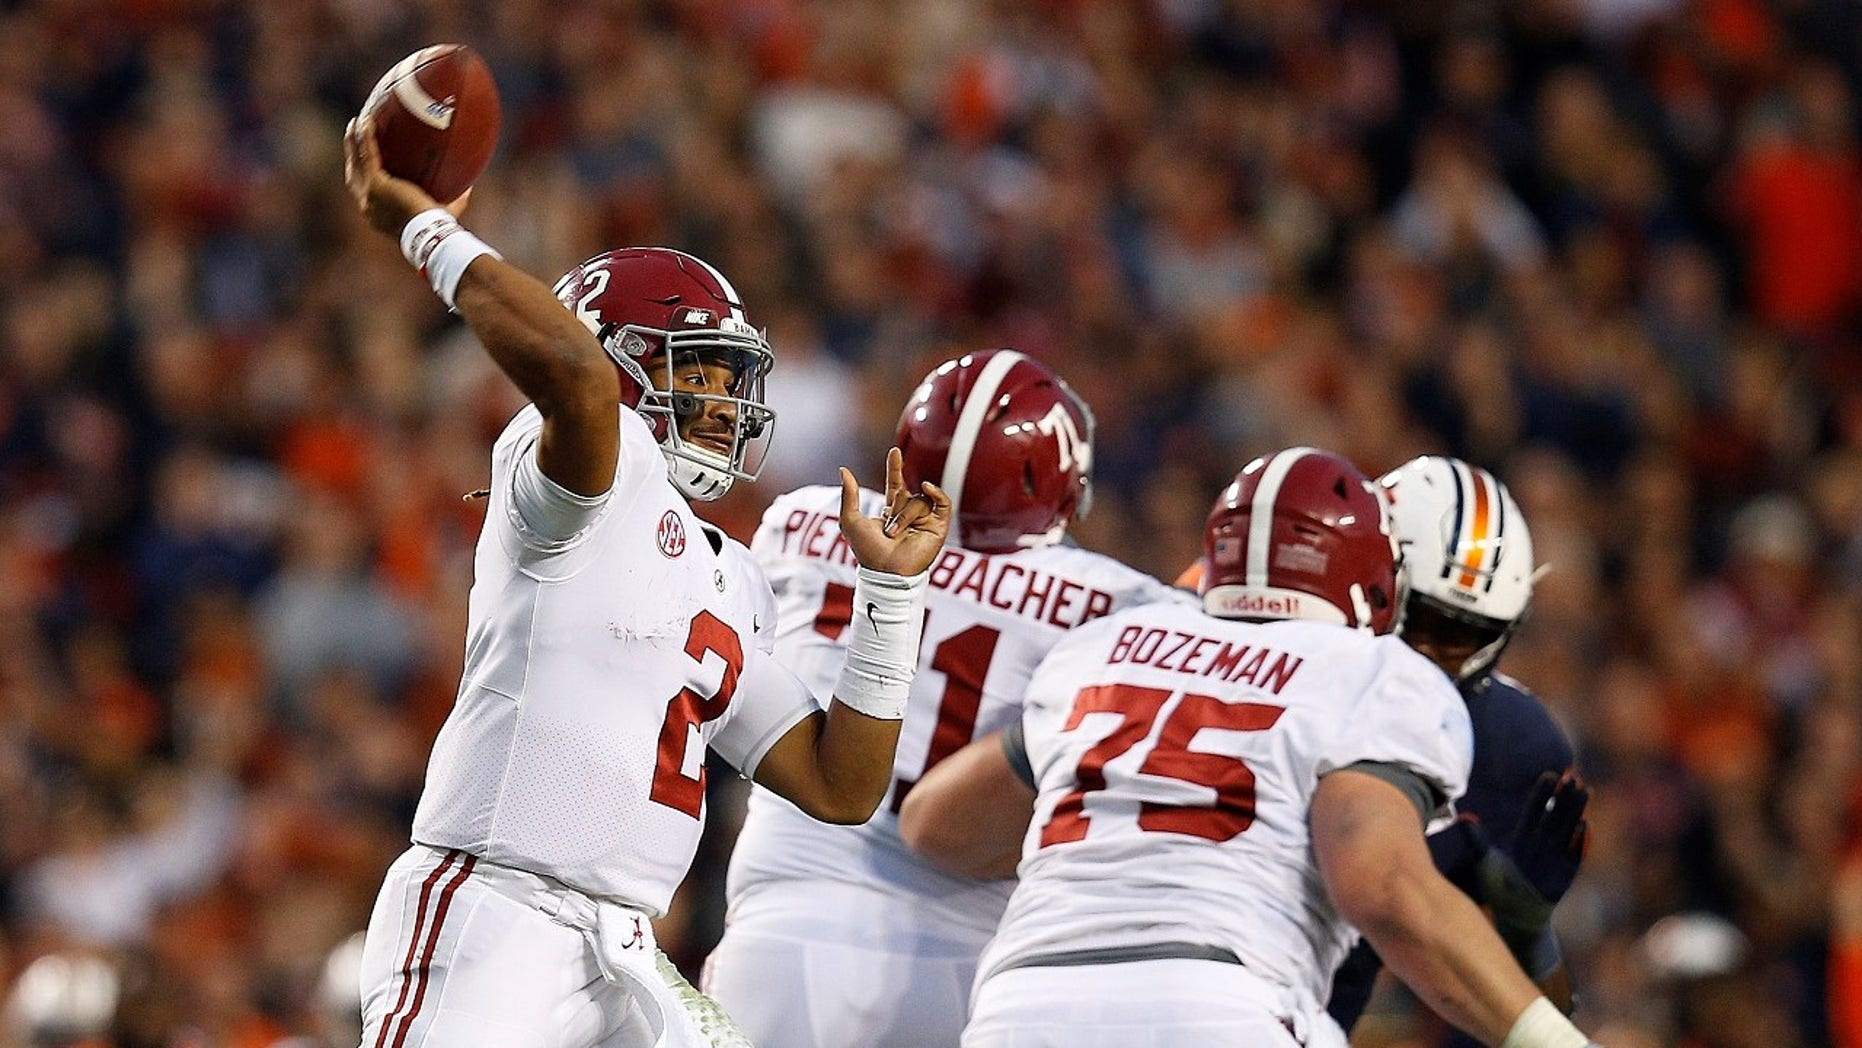 Alabama quarterback Jalen Hurts throws the ball during the second half of the Iron Bowl NCAA college football game, in Auburn, Ala.